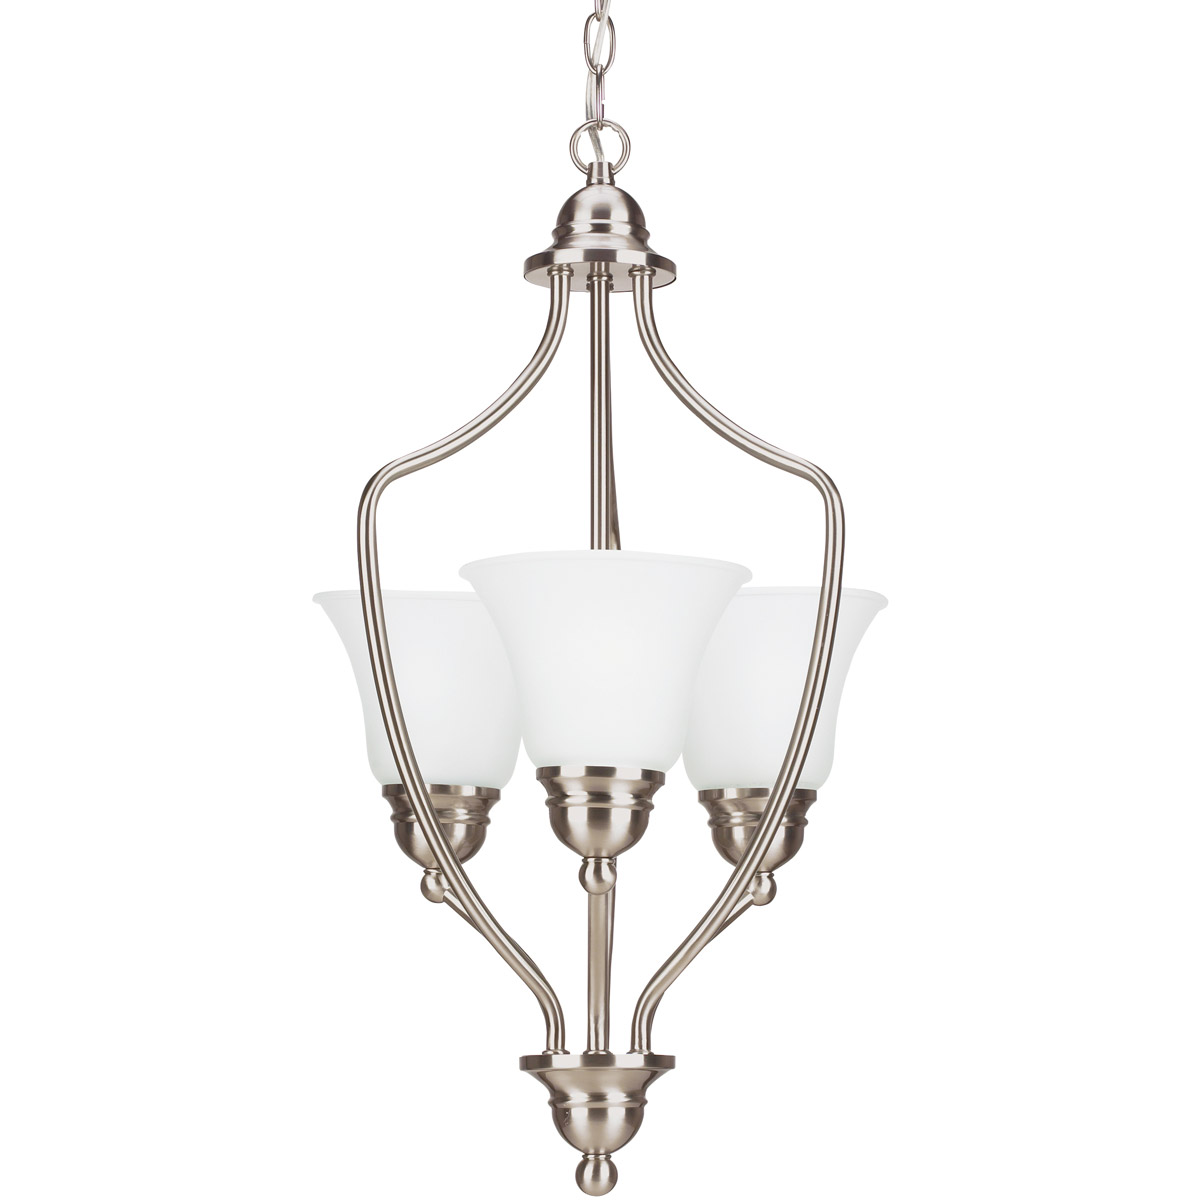 Sea Gull 51410-962 Signature 3 Light 15 inch Brushed Nickel Foyer Pendant Ceiling Light in Standard photo